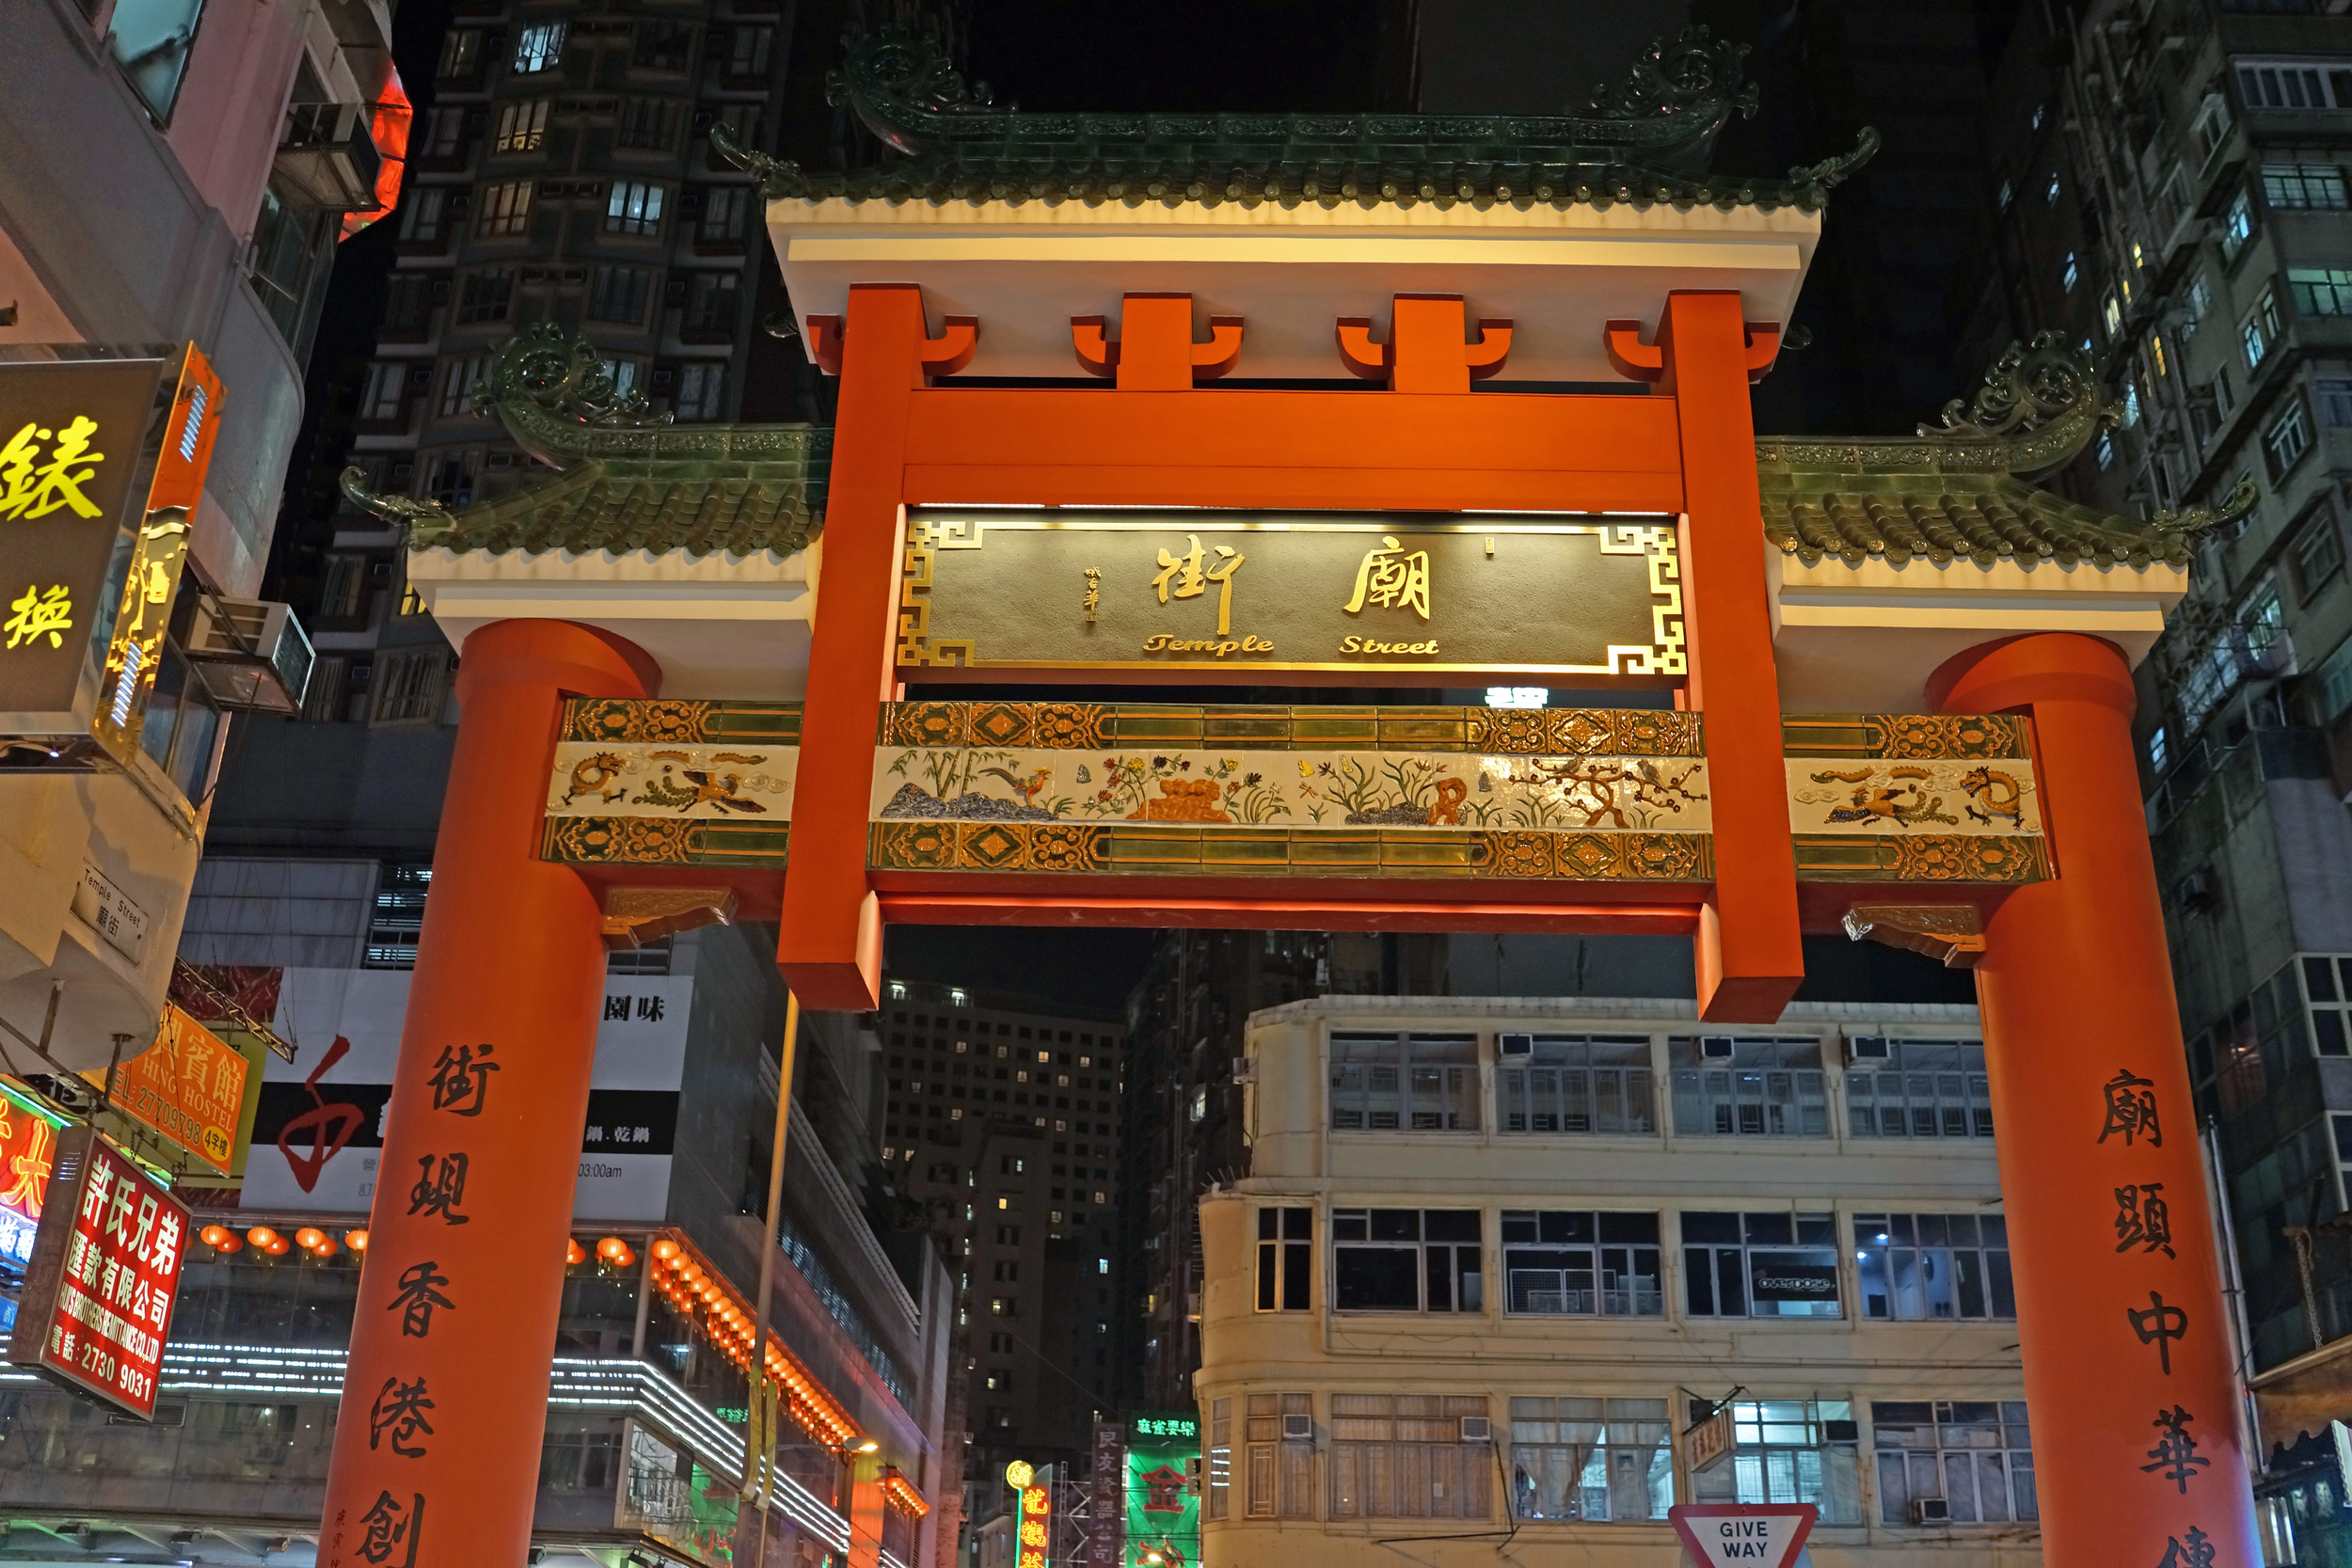 J3 Private Tours Hong Kong | J3 Private Walking Tours Hong Kong   The Temple Street Night Market - a great place to visit at night -  go here for all of my Temple Street images